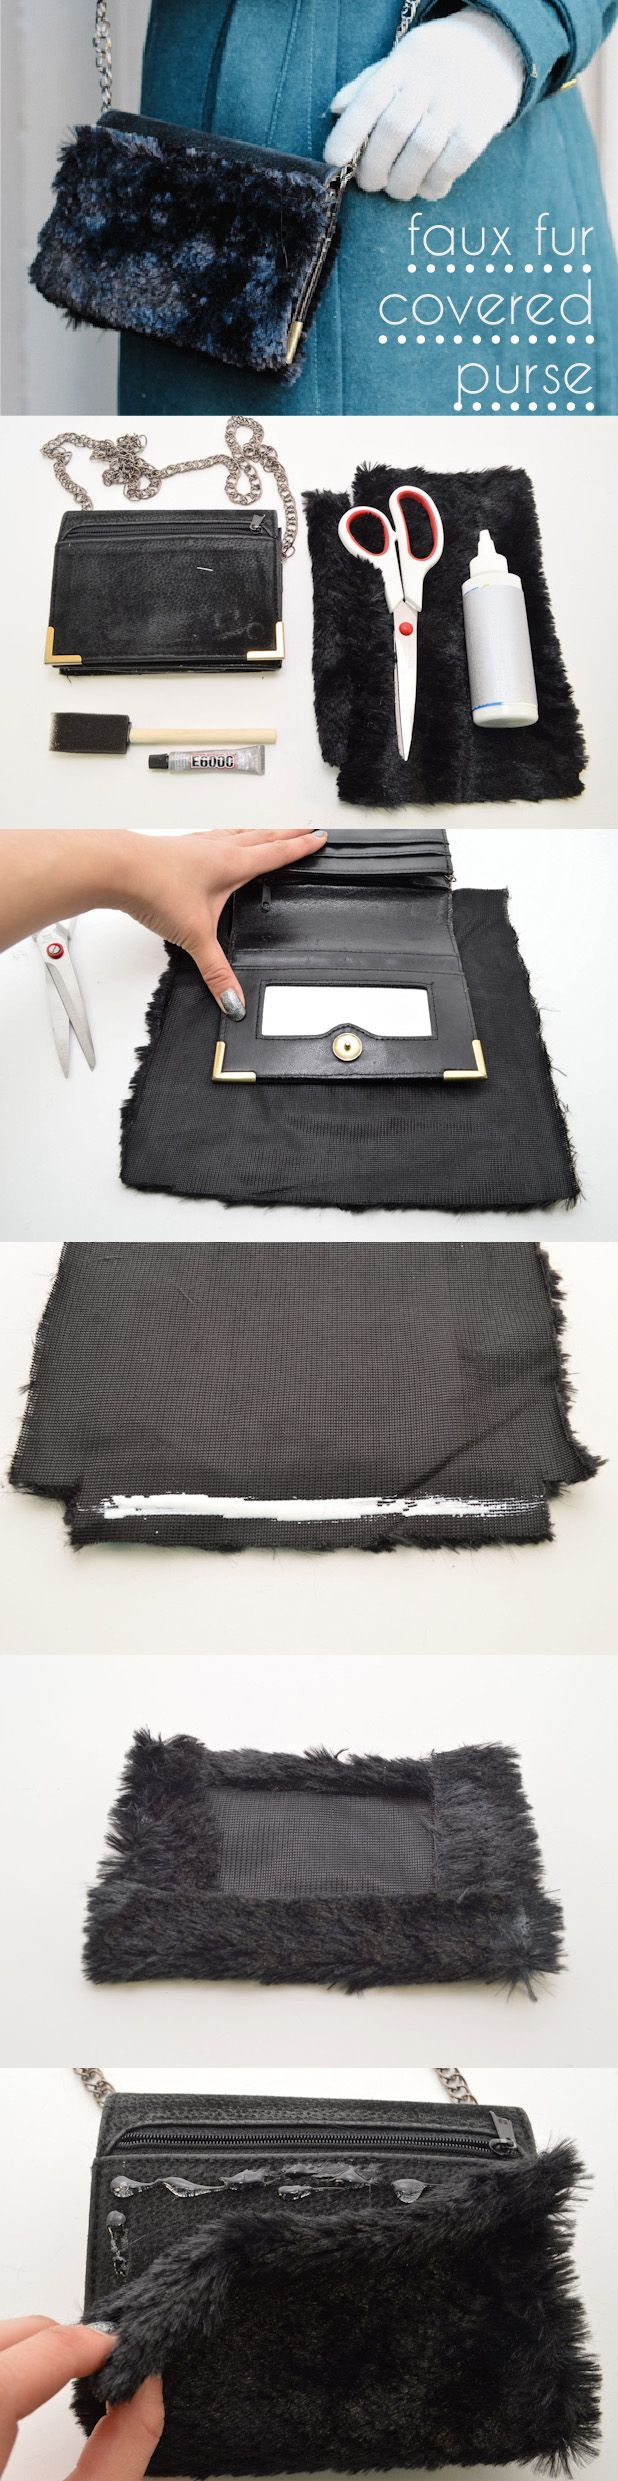 Chic DIY faux fur purse. Perfect for any winter going-out outfit! http://www.ehow.com/ehow-style/blog/diy-makeover-faux-fur-covered-purse/?utm_source=pinterest.com&utm_medium=referral&utm_content=inline&utm_campaign=fanpage